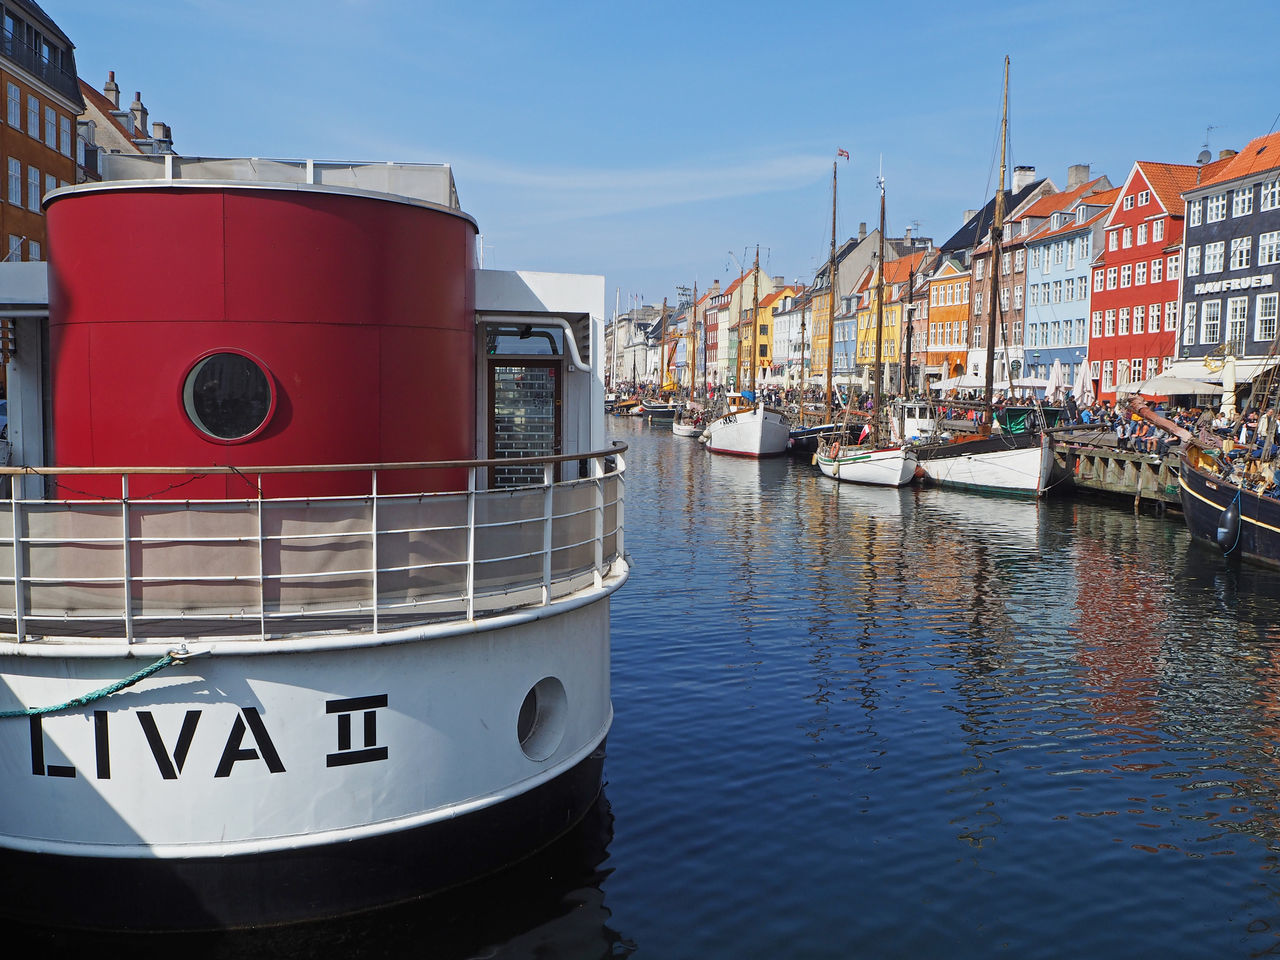 nautical vessel, mode of transport, transportation, architecture, building exterior, moored, built structure, no people, day, water, red, outdoors, sky, waterfront, nature, harbor